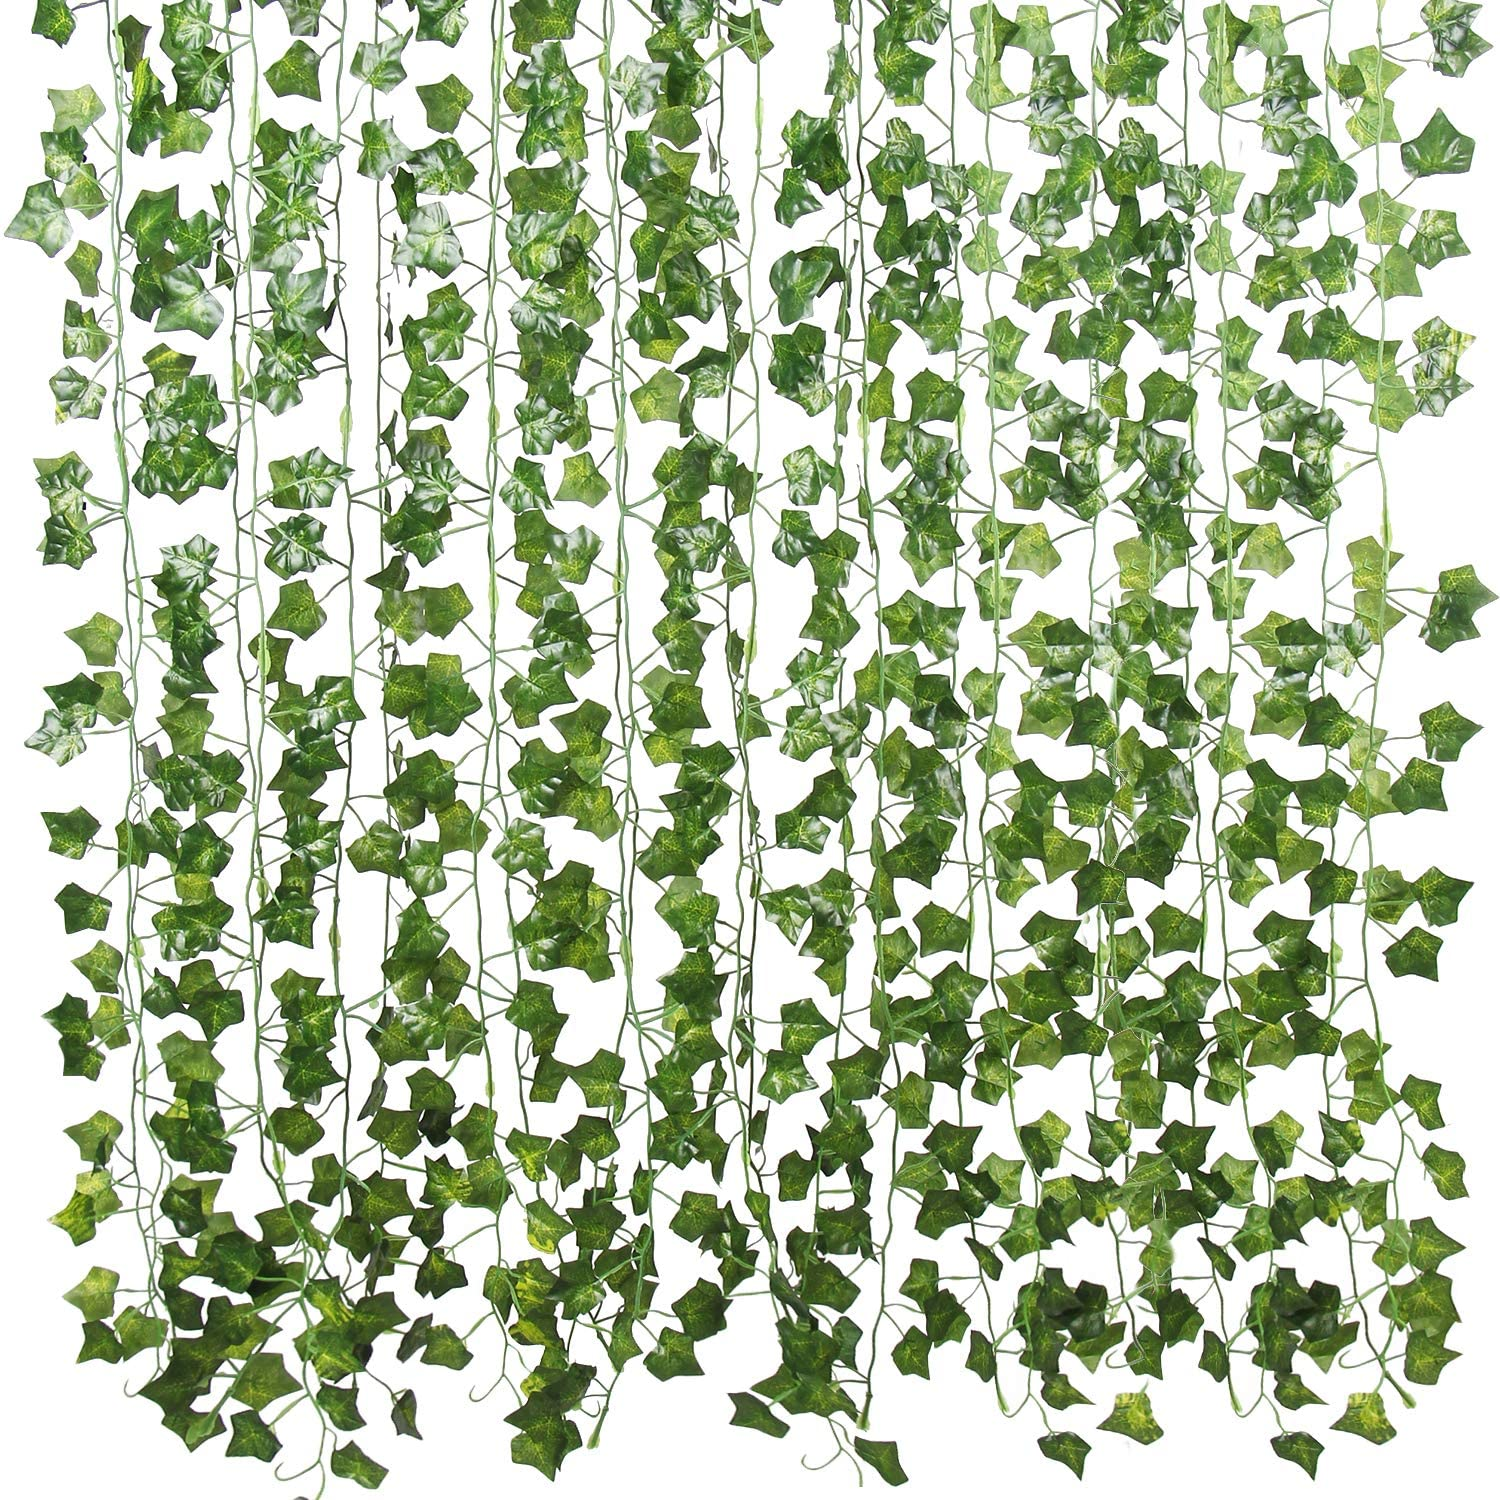 Flojery 78Ft 12pcs Silk Artificial Ivy Vine Hanging Leaves Plant Greenery Decor Party Home Garden Wedding Wall Decor (Green)